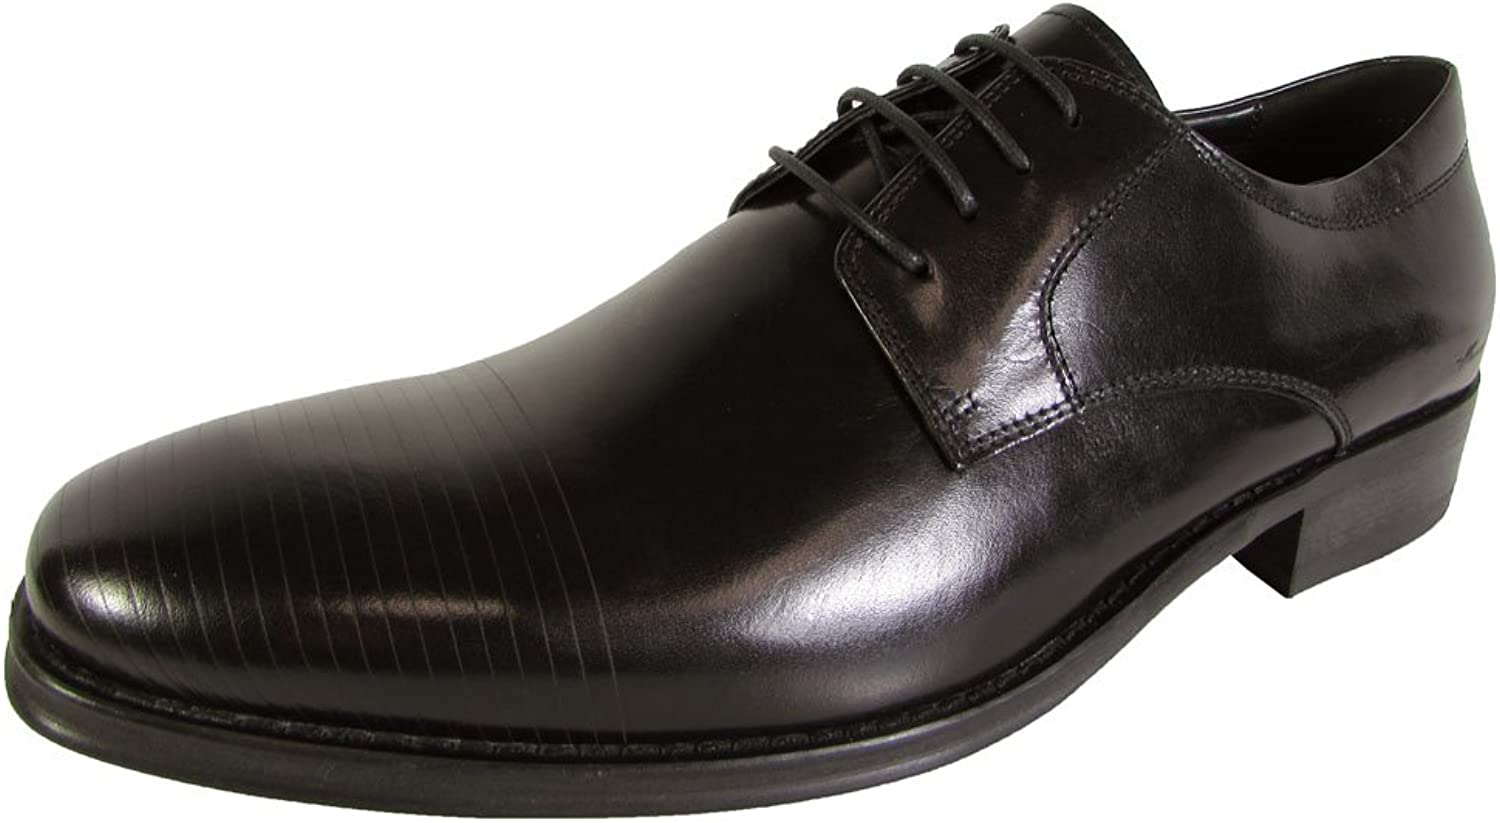 Kenneth Cole New York Mens Fresh Air LE Lace Up Oxford shoes